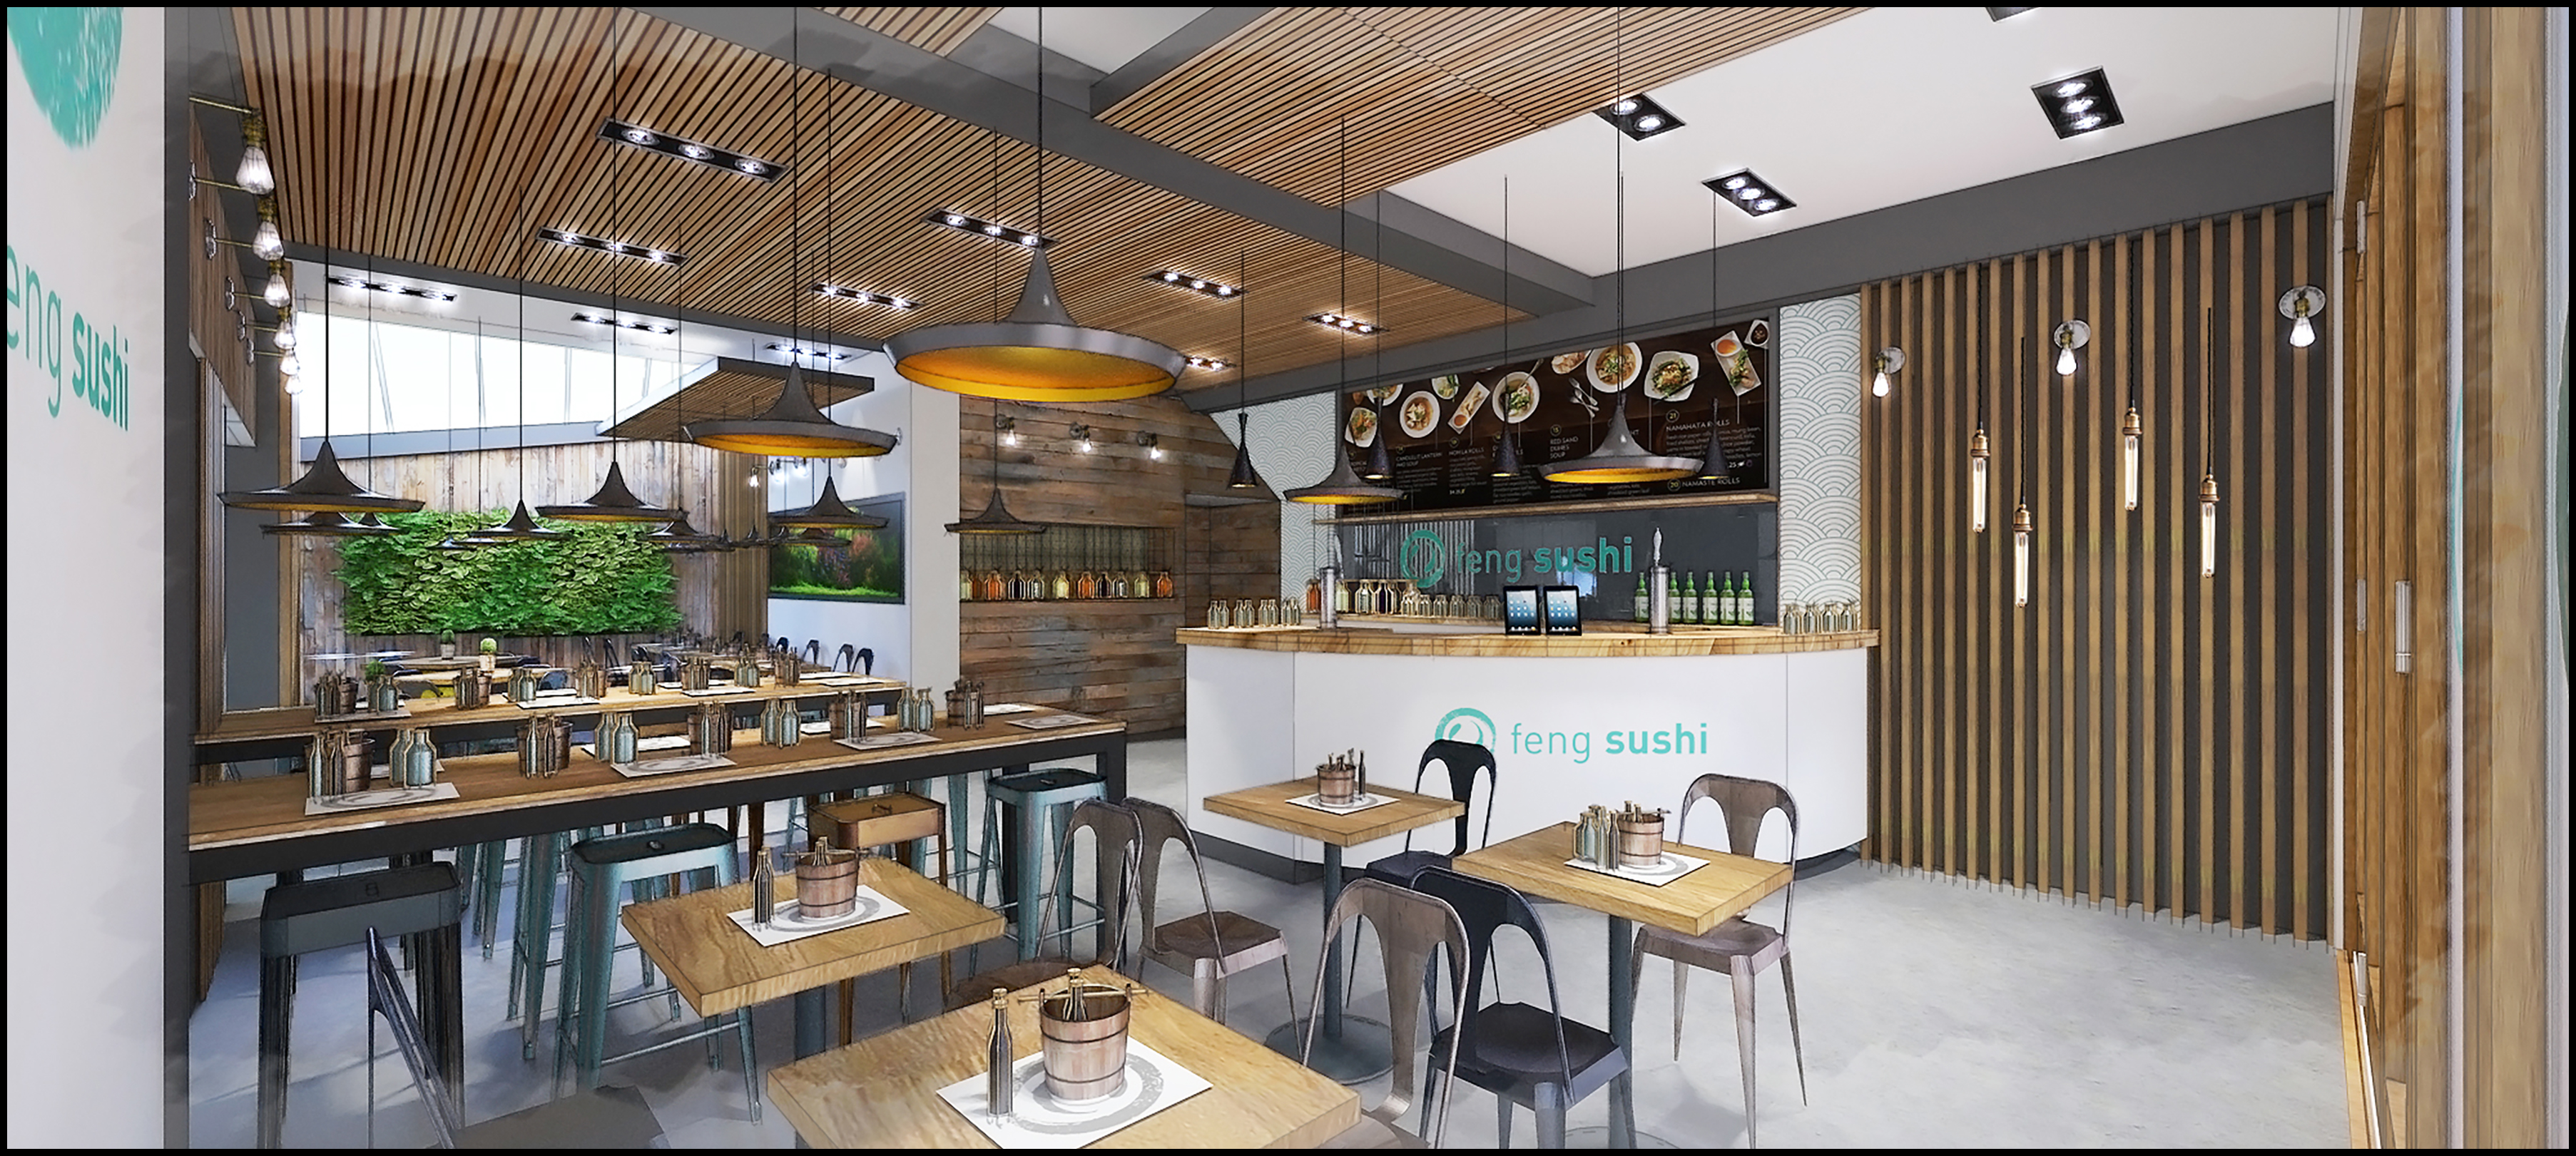 INTERIOR CONCEPT IMAGE 2 - Fengsushi - 1